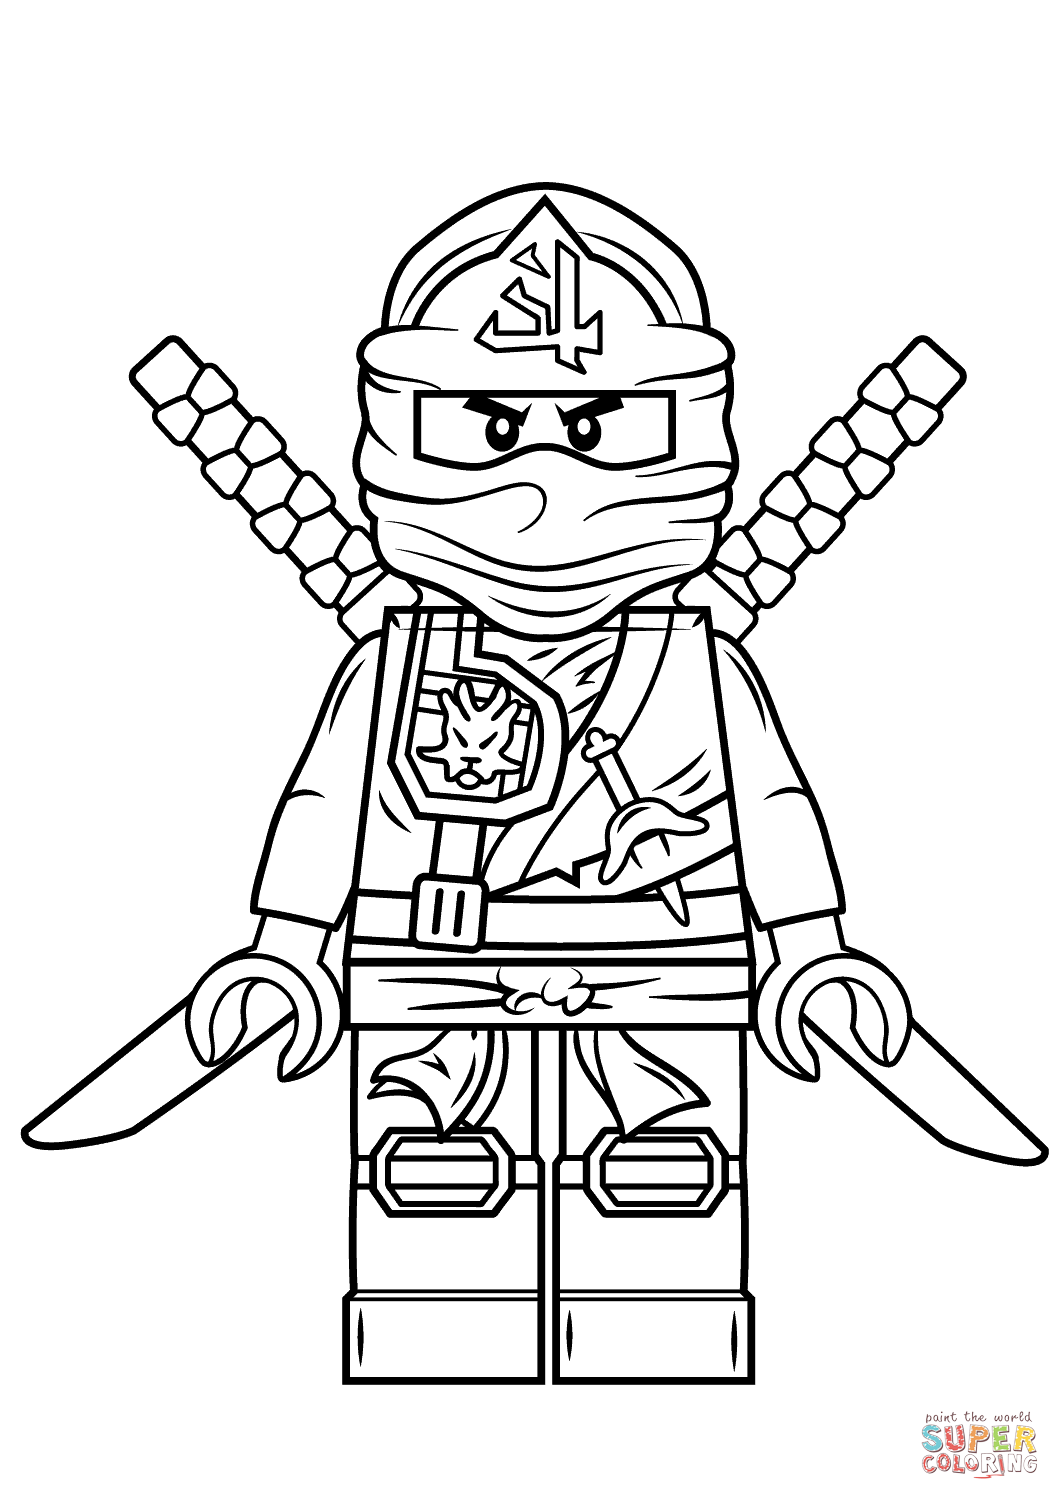 Lego Ninjago Green Ninja | Super Coloring | Mia\'s Pins | Pinterest ...